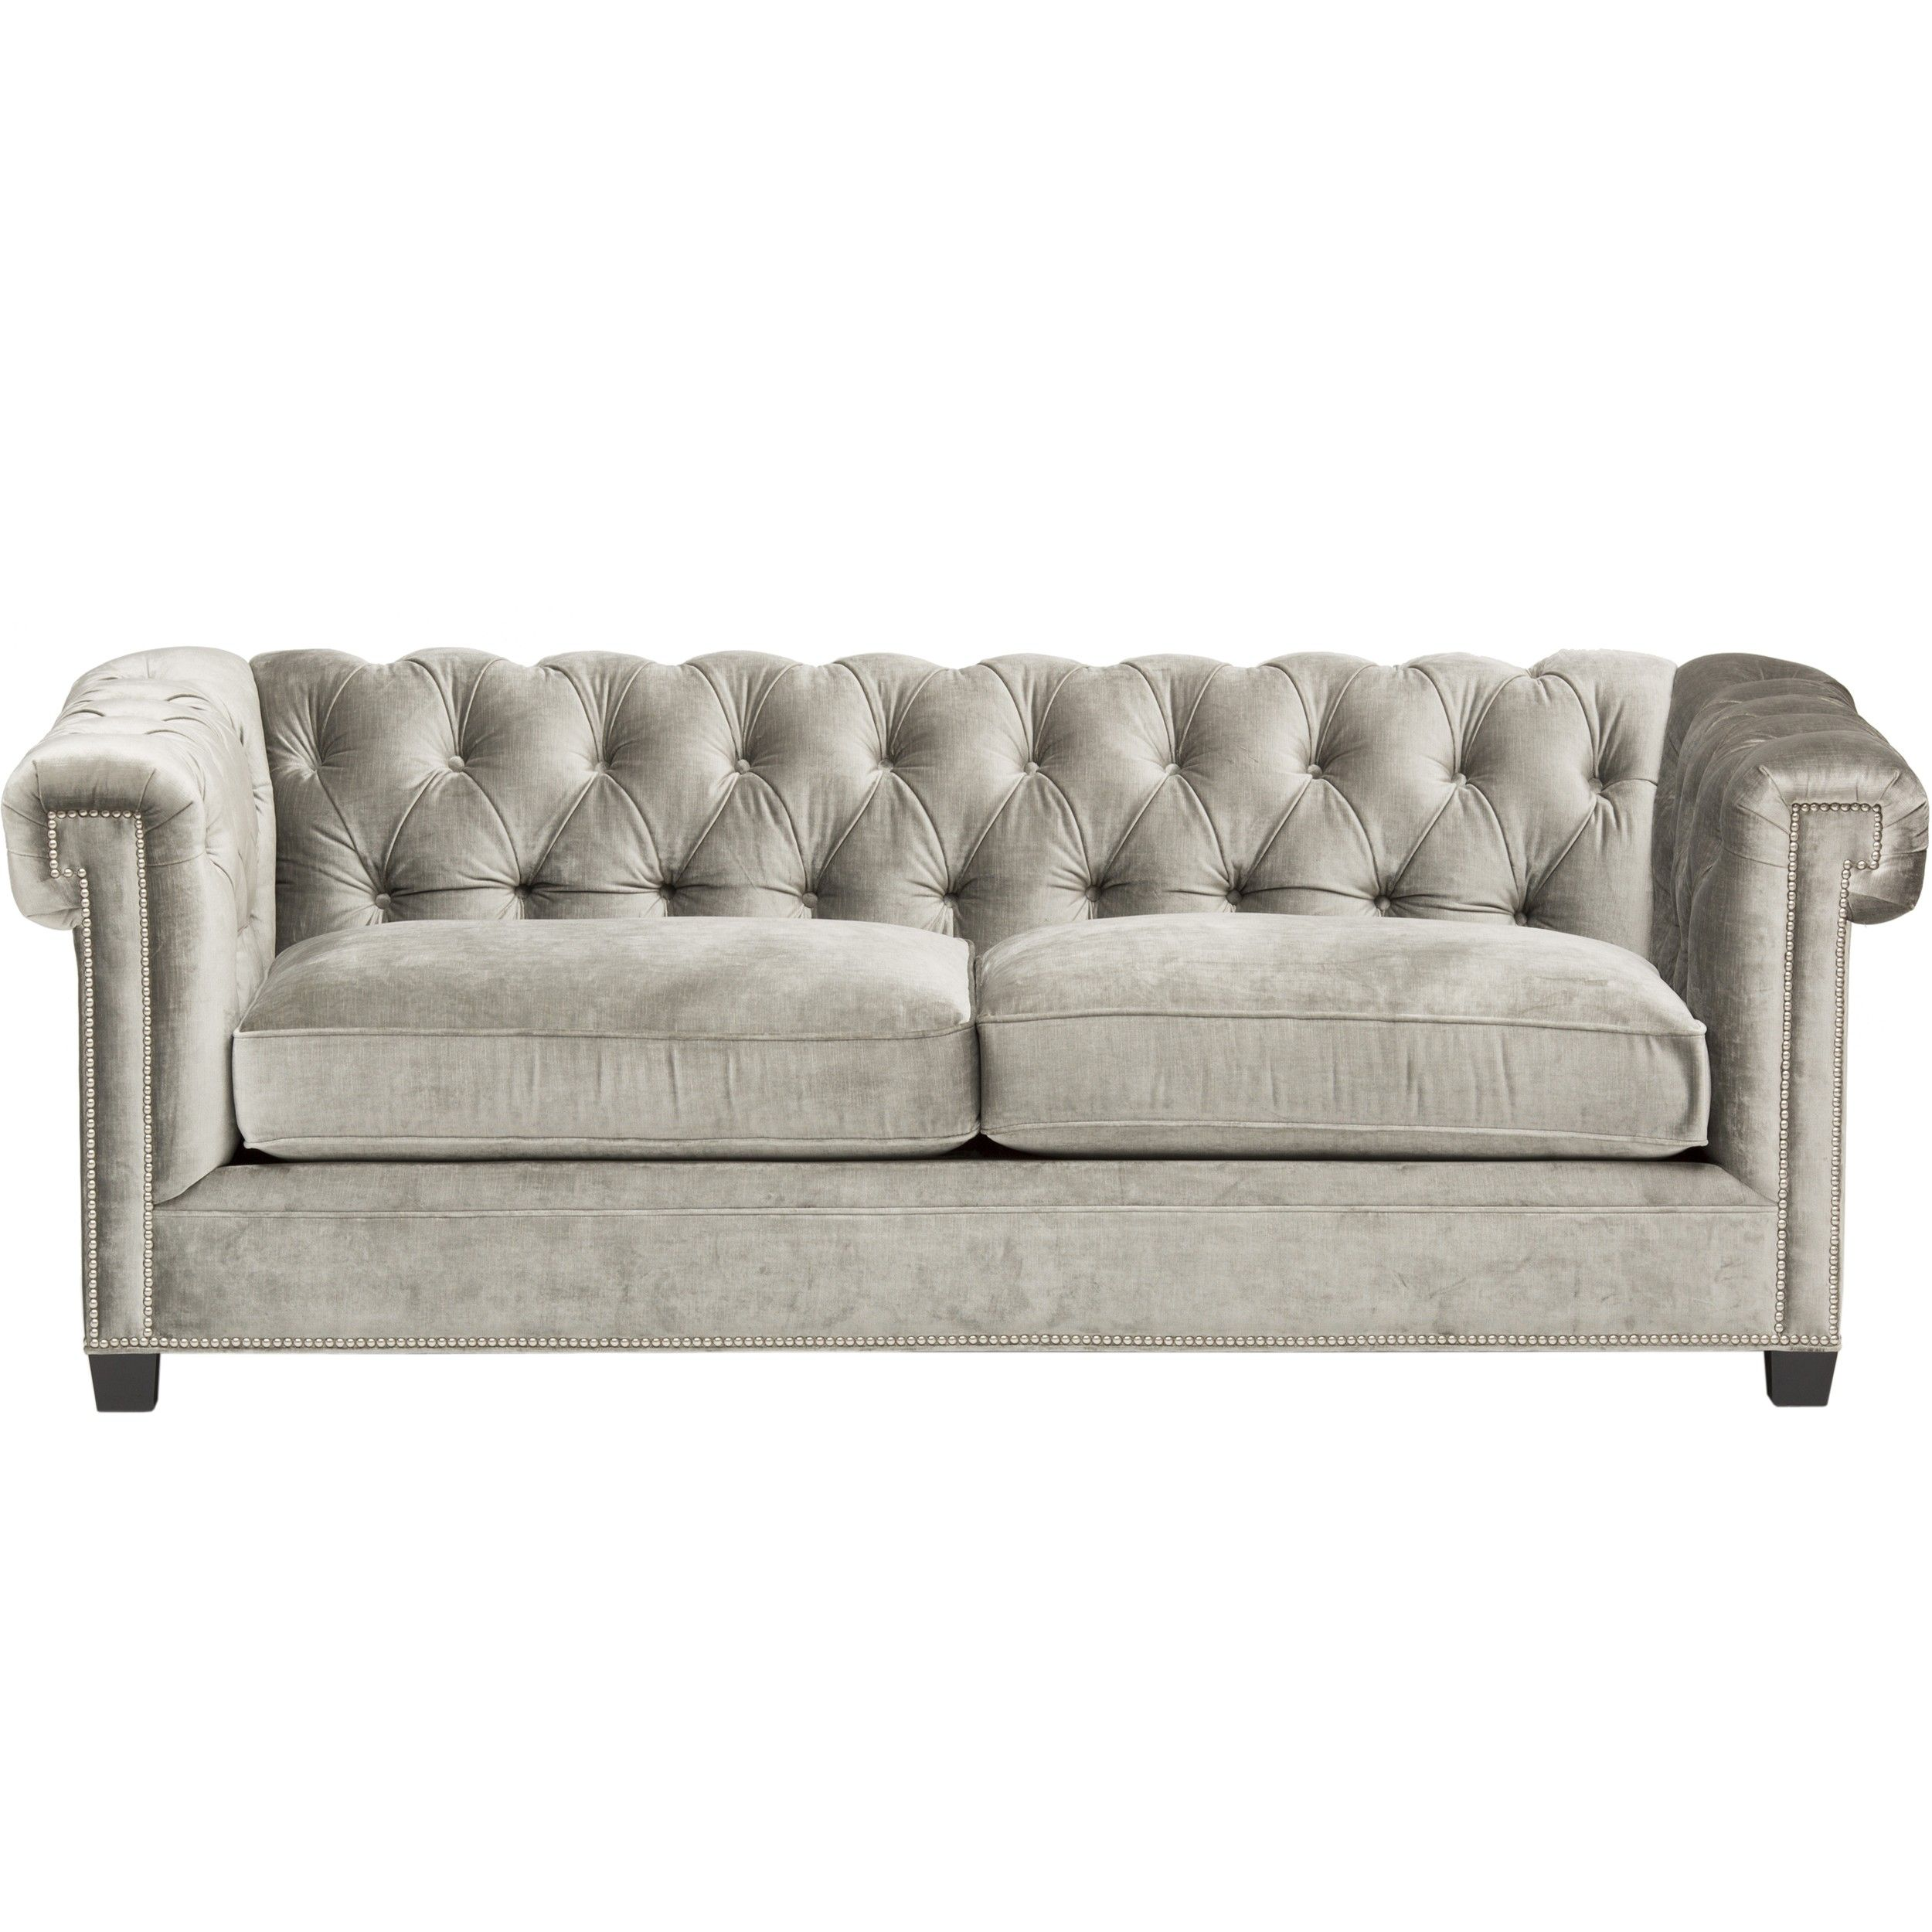 Best Sofas Made In The Usa Sofa Usado Olx Em Goiania George Brussels Charcoal Pinterest